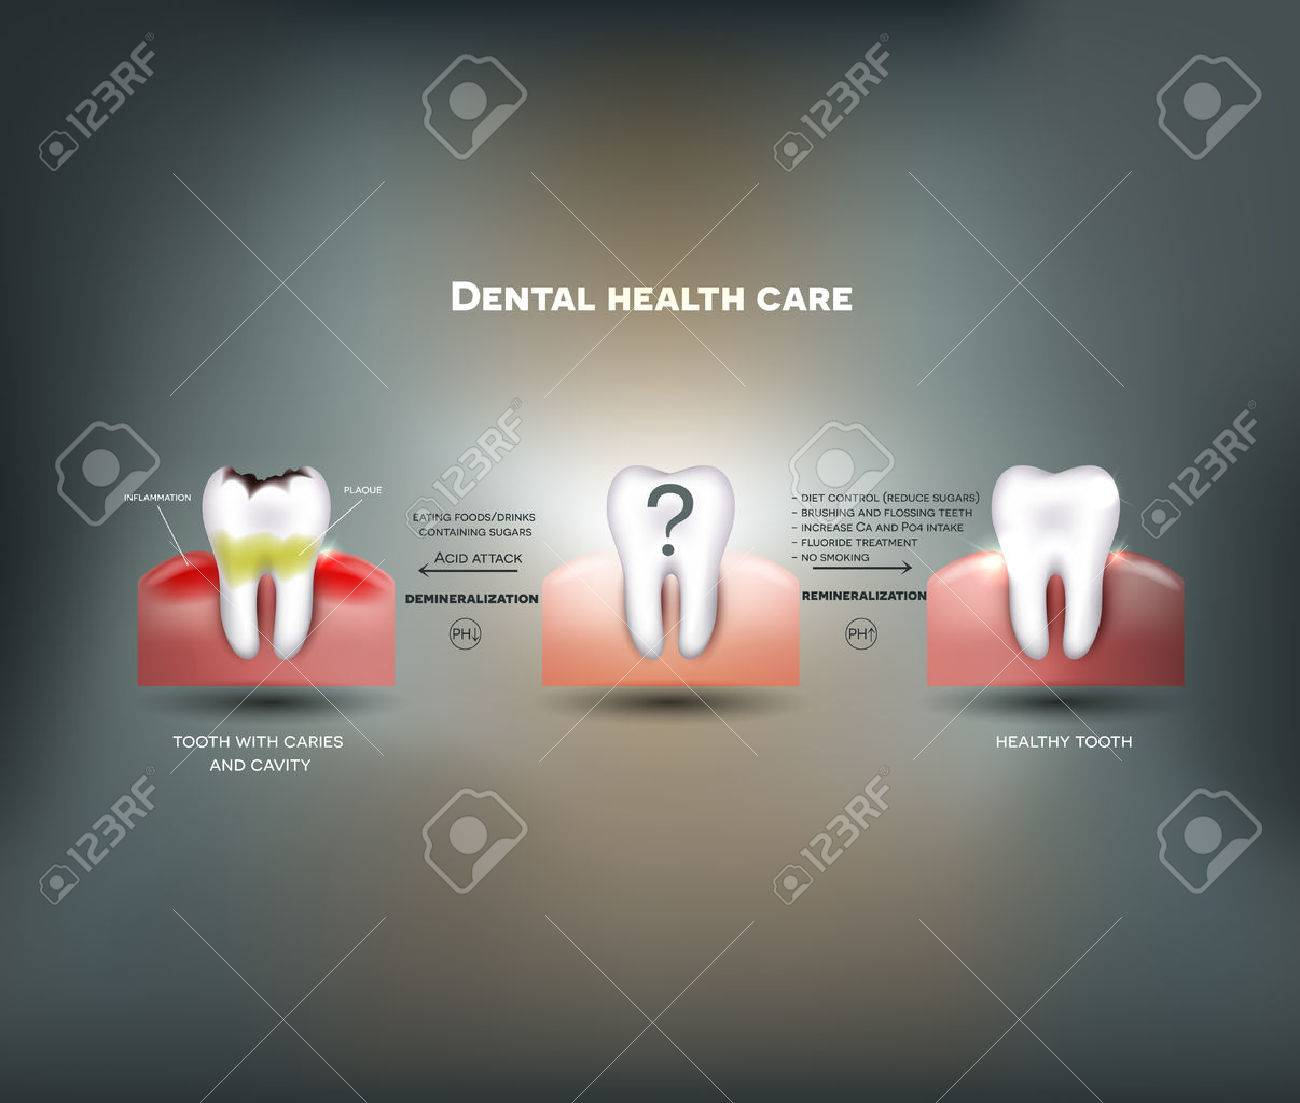 Dental health care tips  Diet without sugars, brushing, fluoride